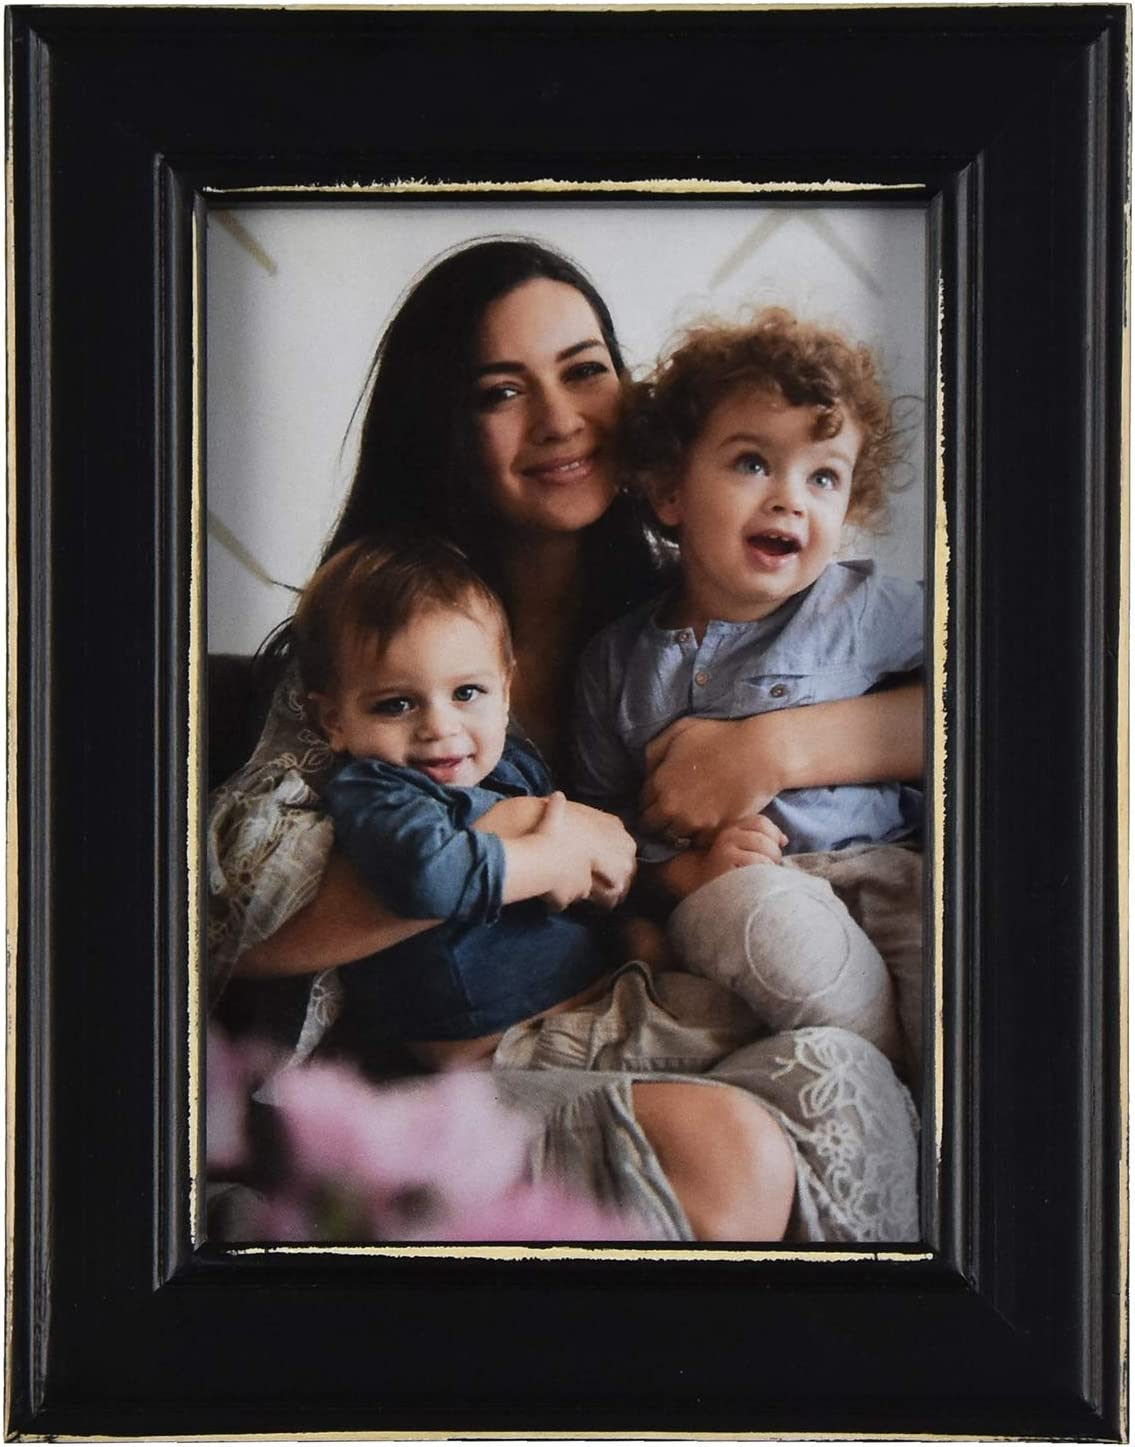 Fetco Home Dcor Longwood Rustic Black 5x7 Picture Frame,